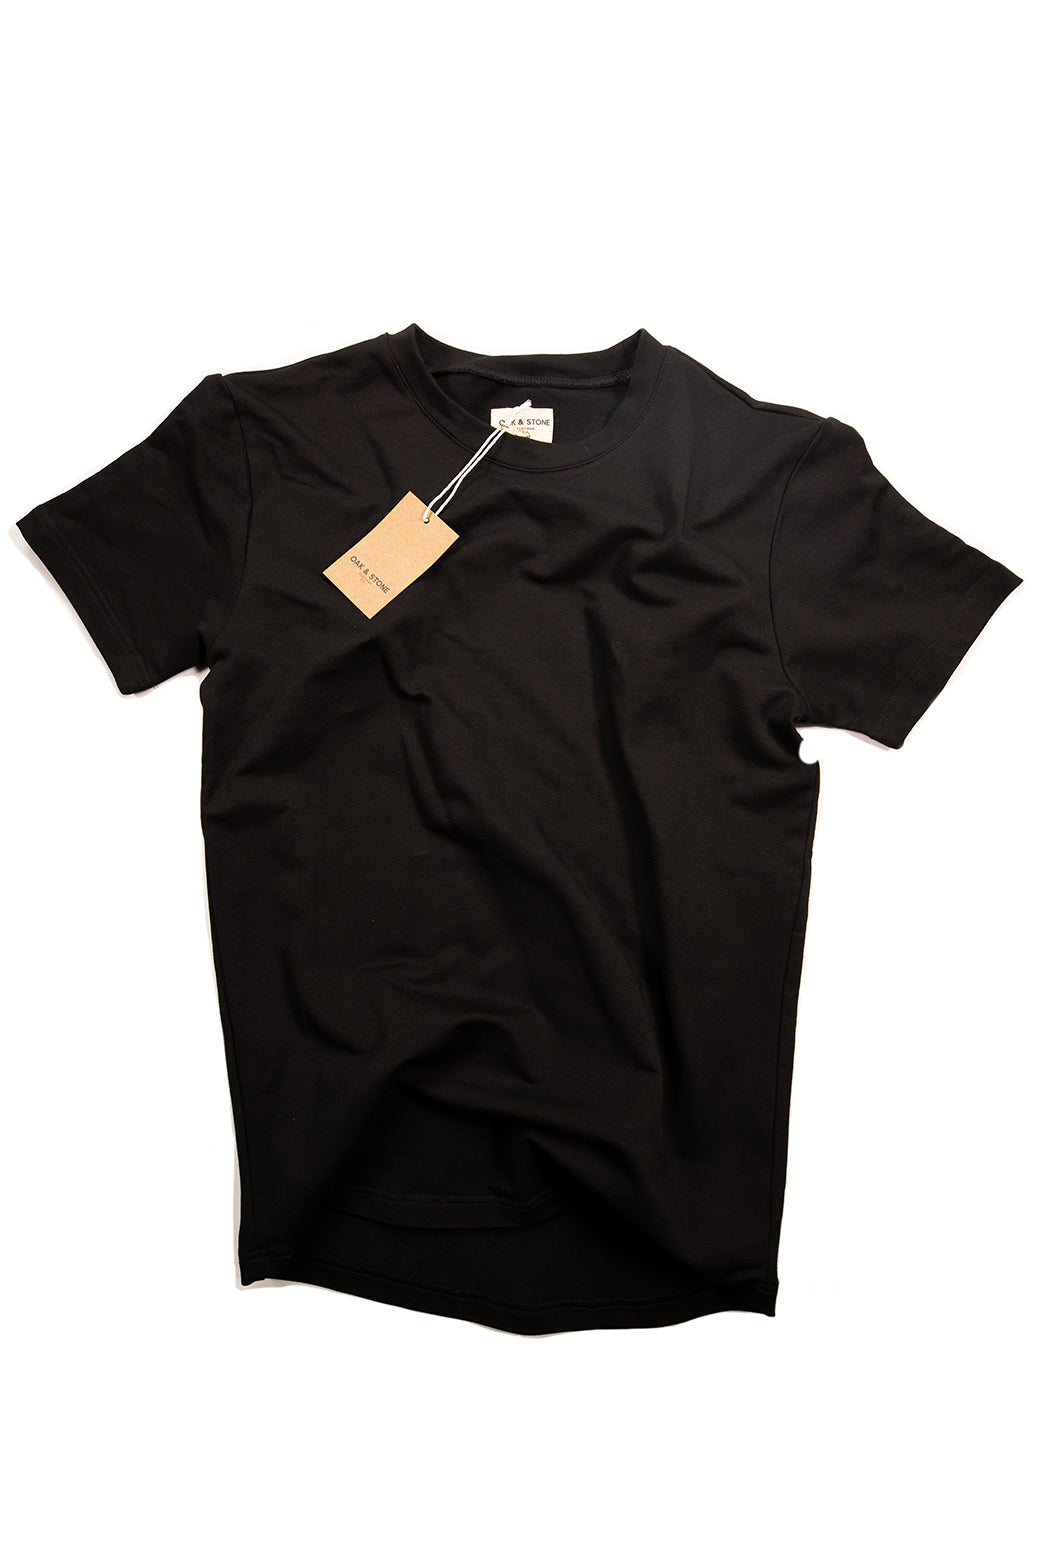 The Classic S/S Tee - Black - Oak & Stone Clothing Co.